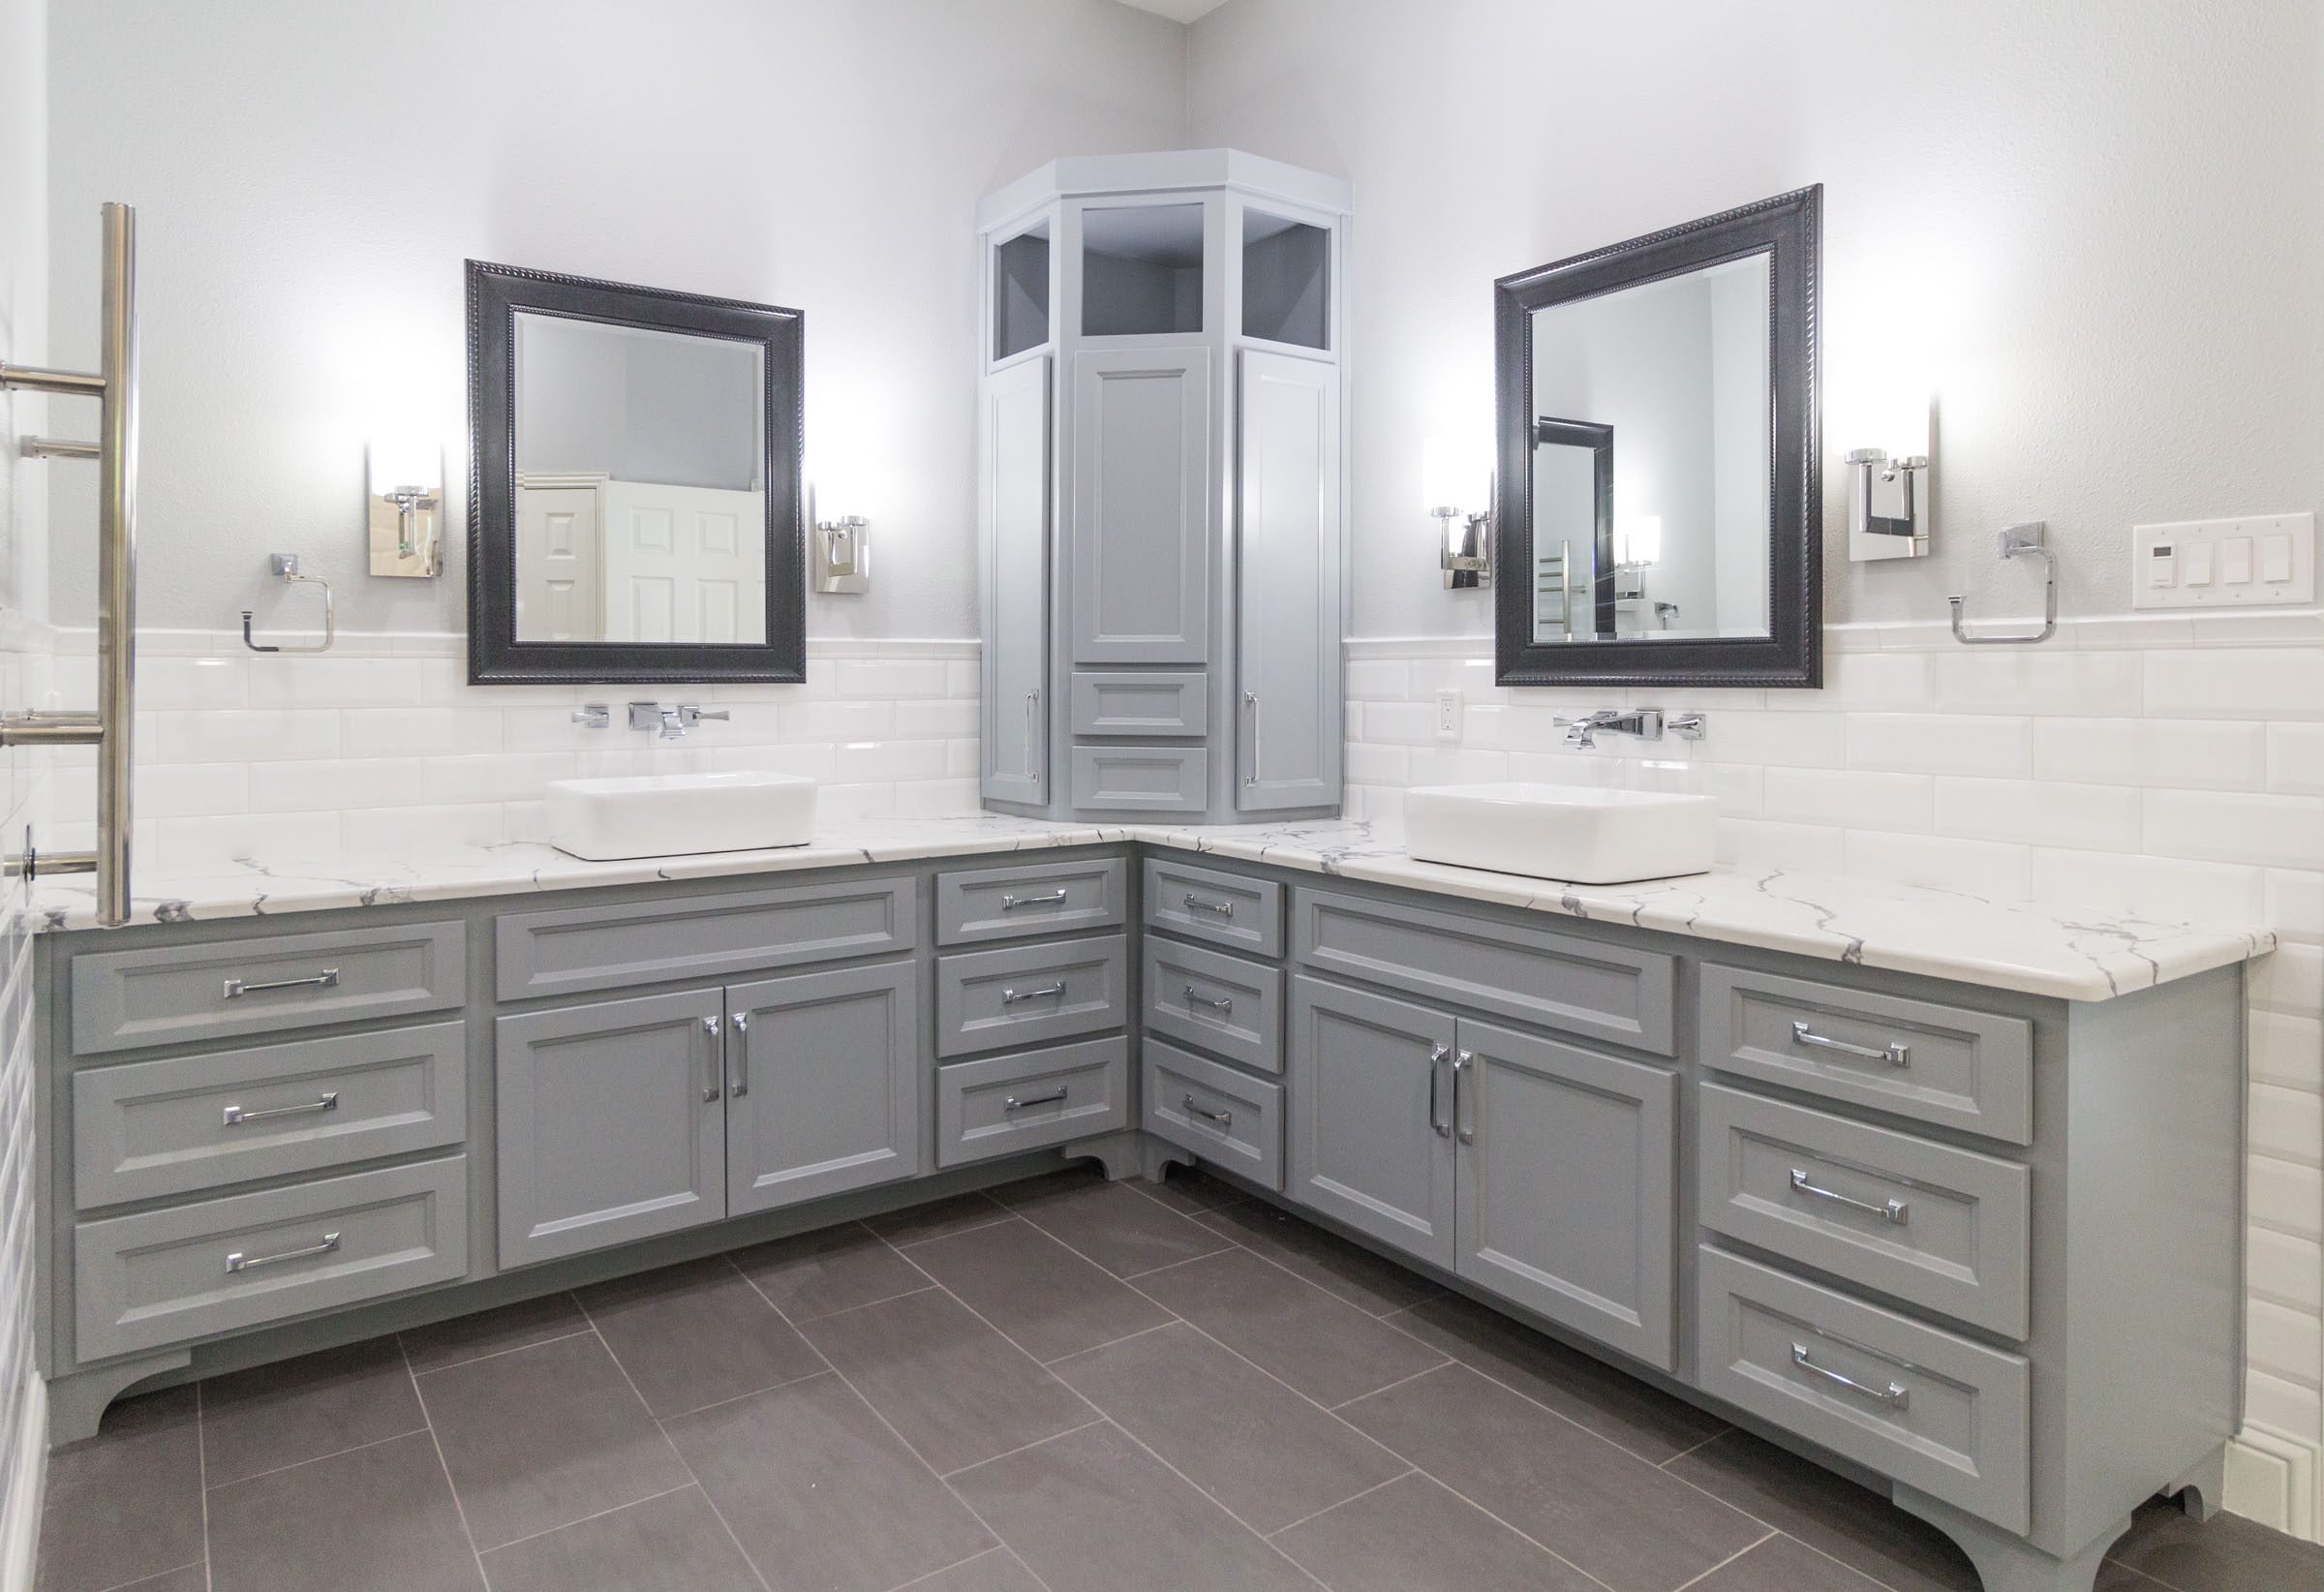 Contemporary bathroom remodel, chrome hardware, white subway tile, grey cabinets, granite countertops, black trimmed mirrors